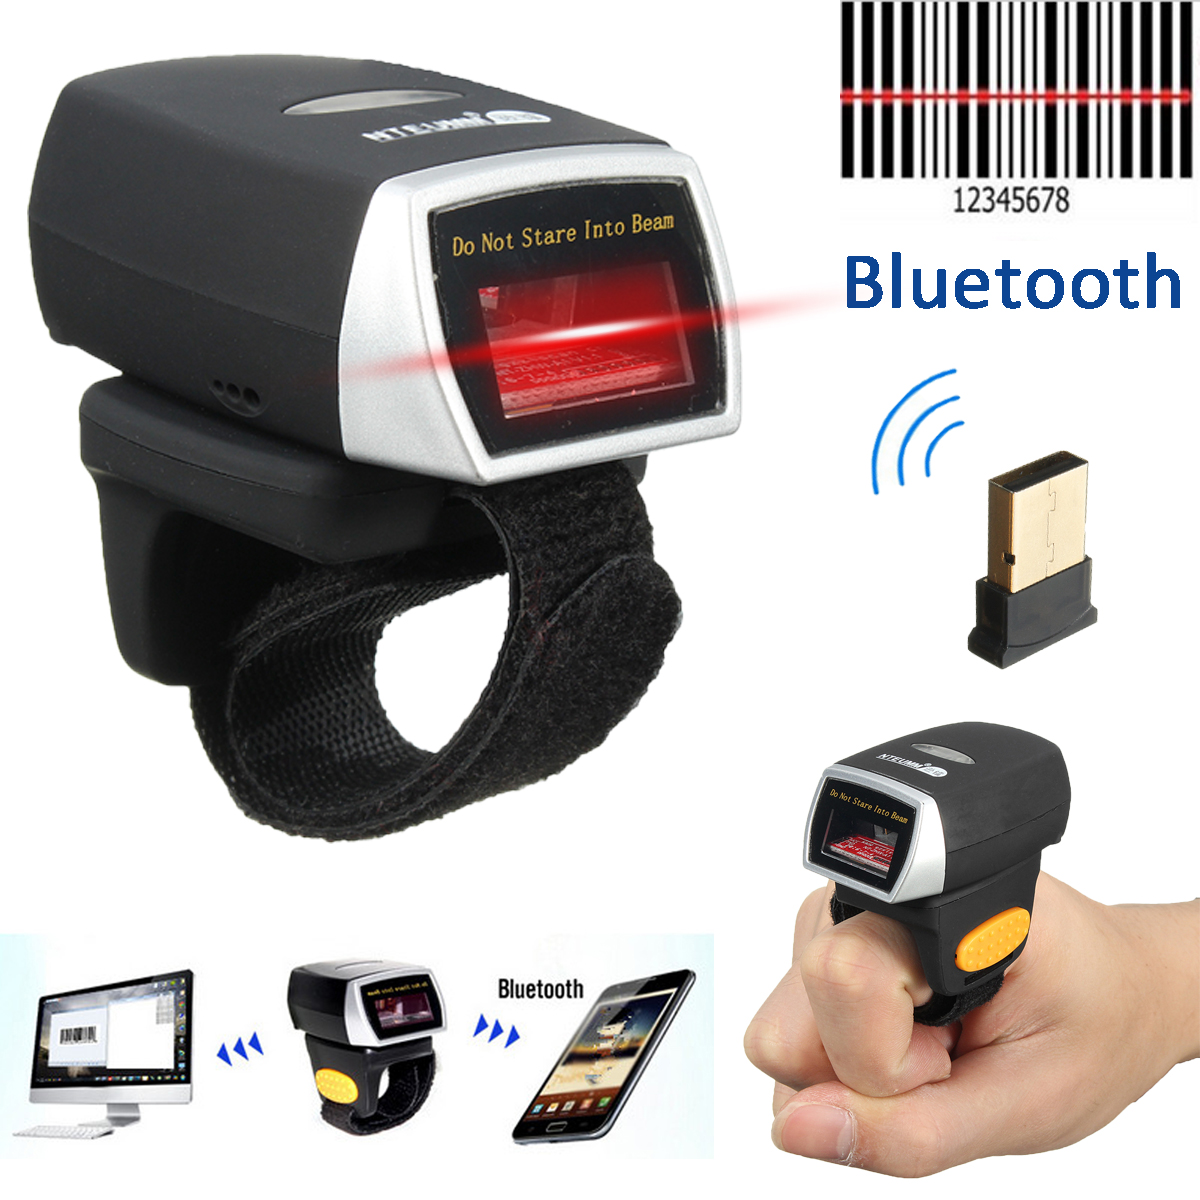 Mini Bluetooth Scanner Barcode Reader Laser Weirless Scanner Wearable Ring Bar Code Scanner 1D Reader Scan for Phone PC Tablet laser weirless scanner wearable ring bar code scanner mini bluetooth scanner barcode reader 1d reader scan for phone pc tablet